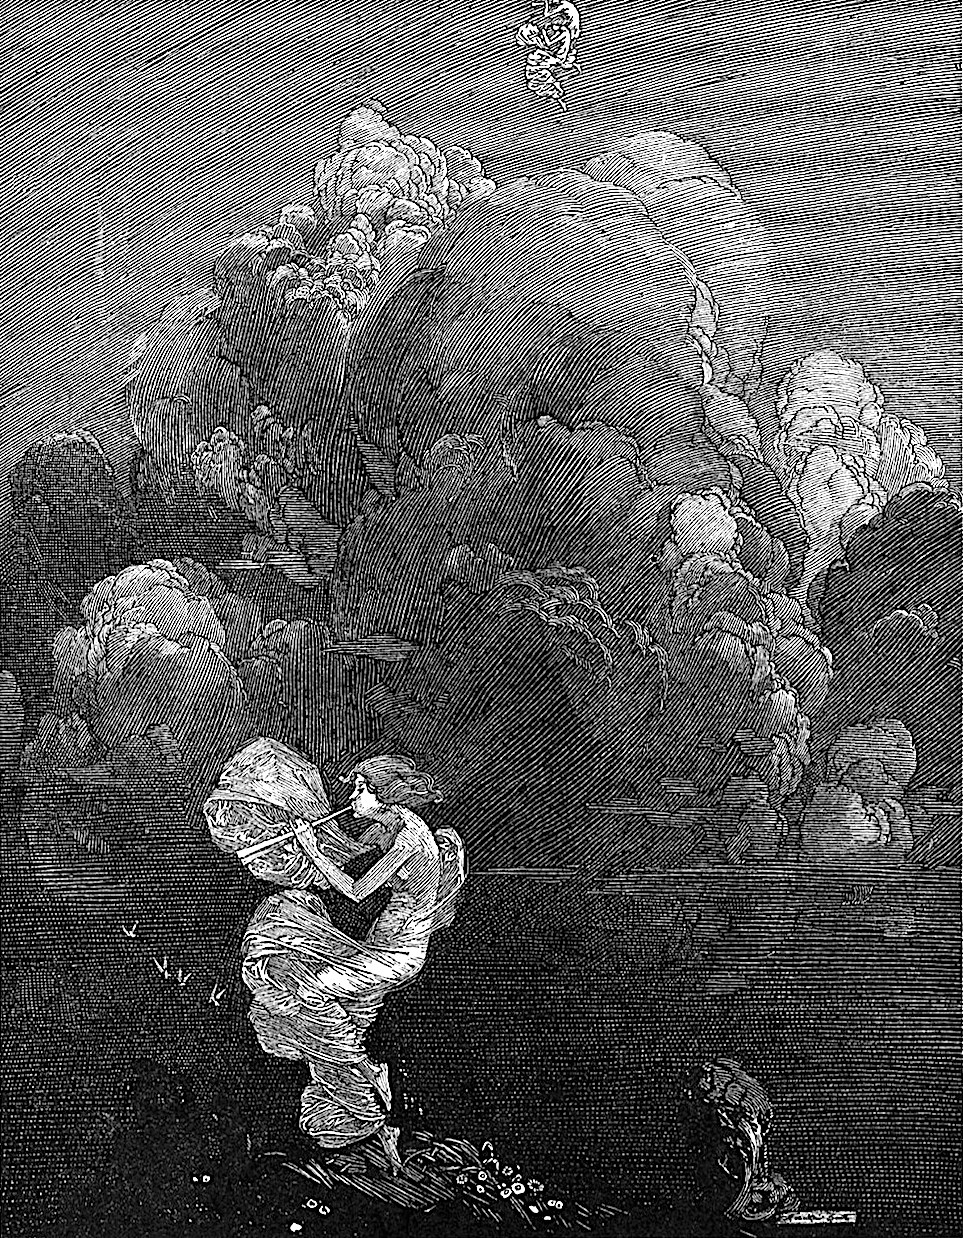 a Franklin Booth illustration of a gathering storm in the sky